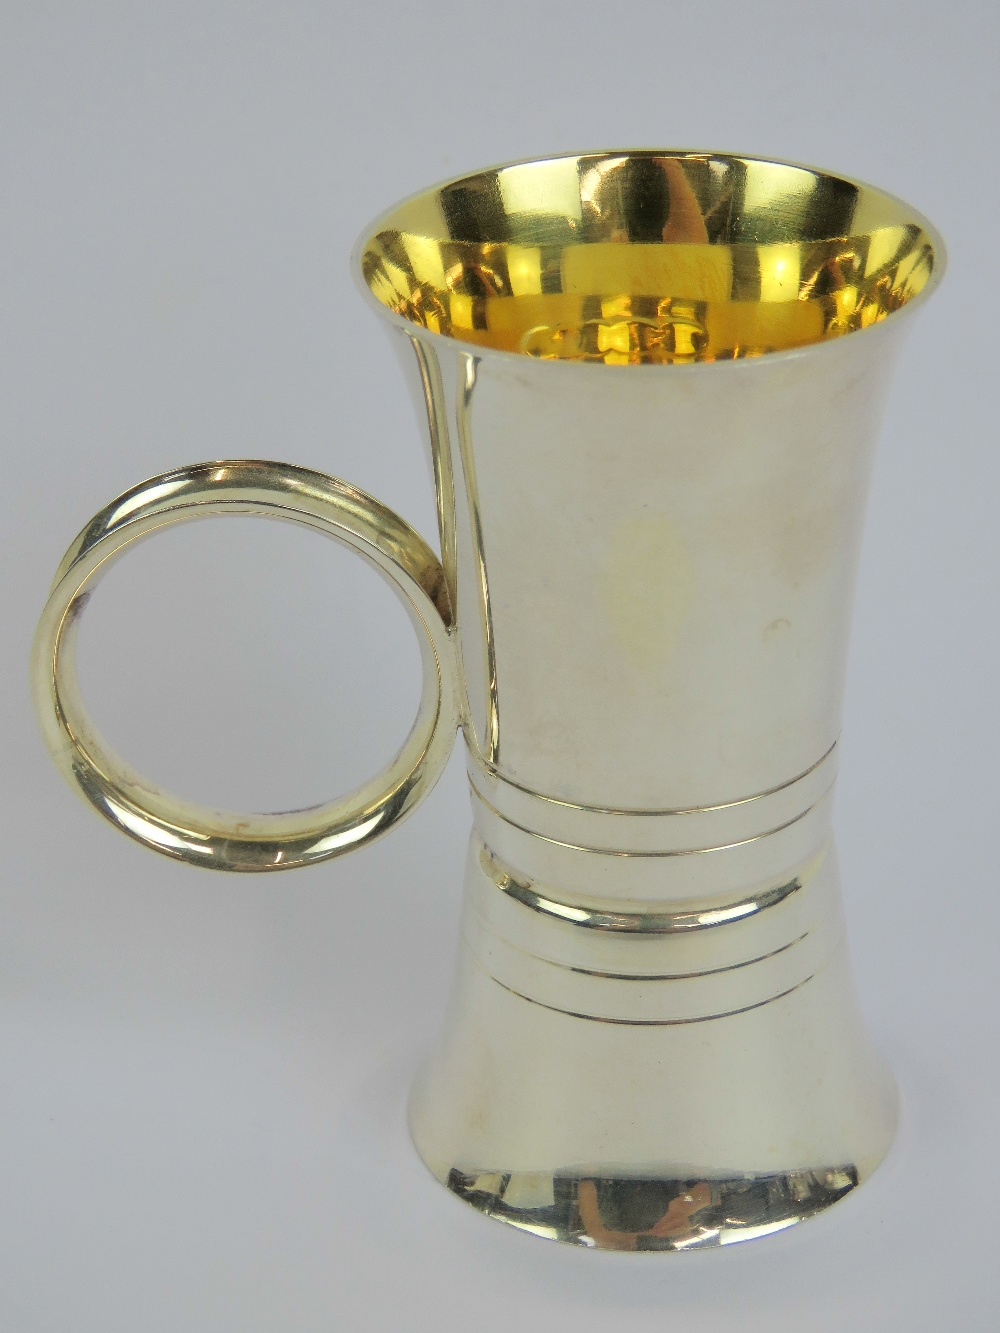 Lot 20 - A HM silver double ended spirit measure having loop handle and gilded interior,